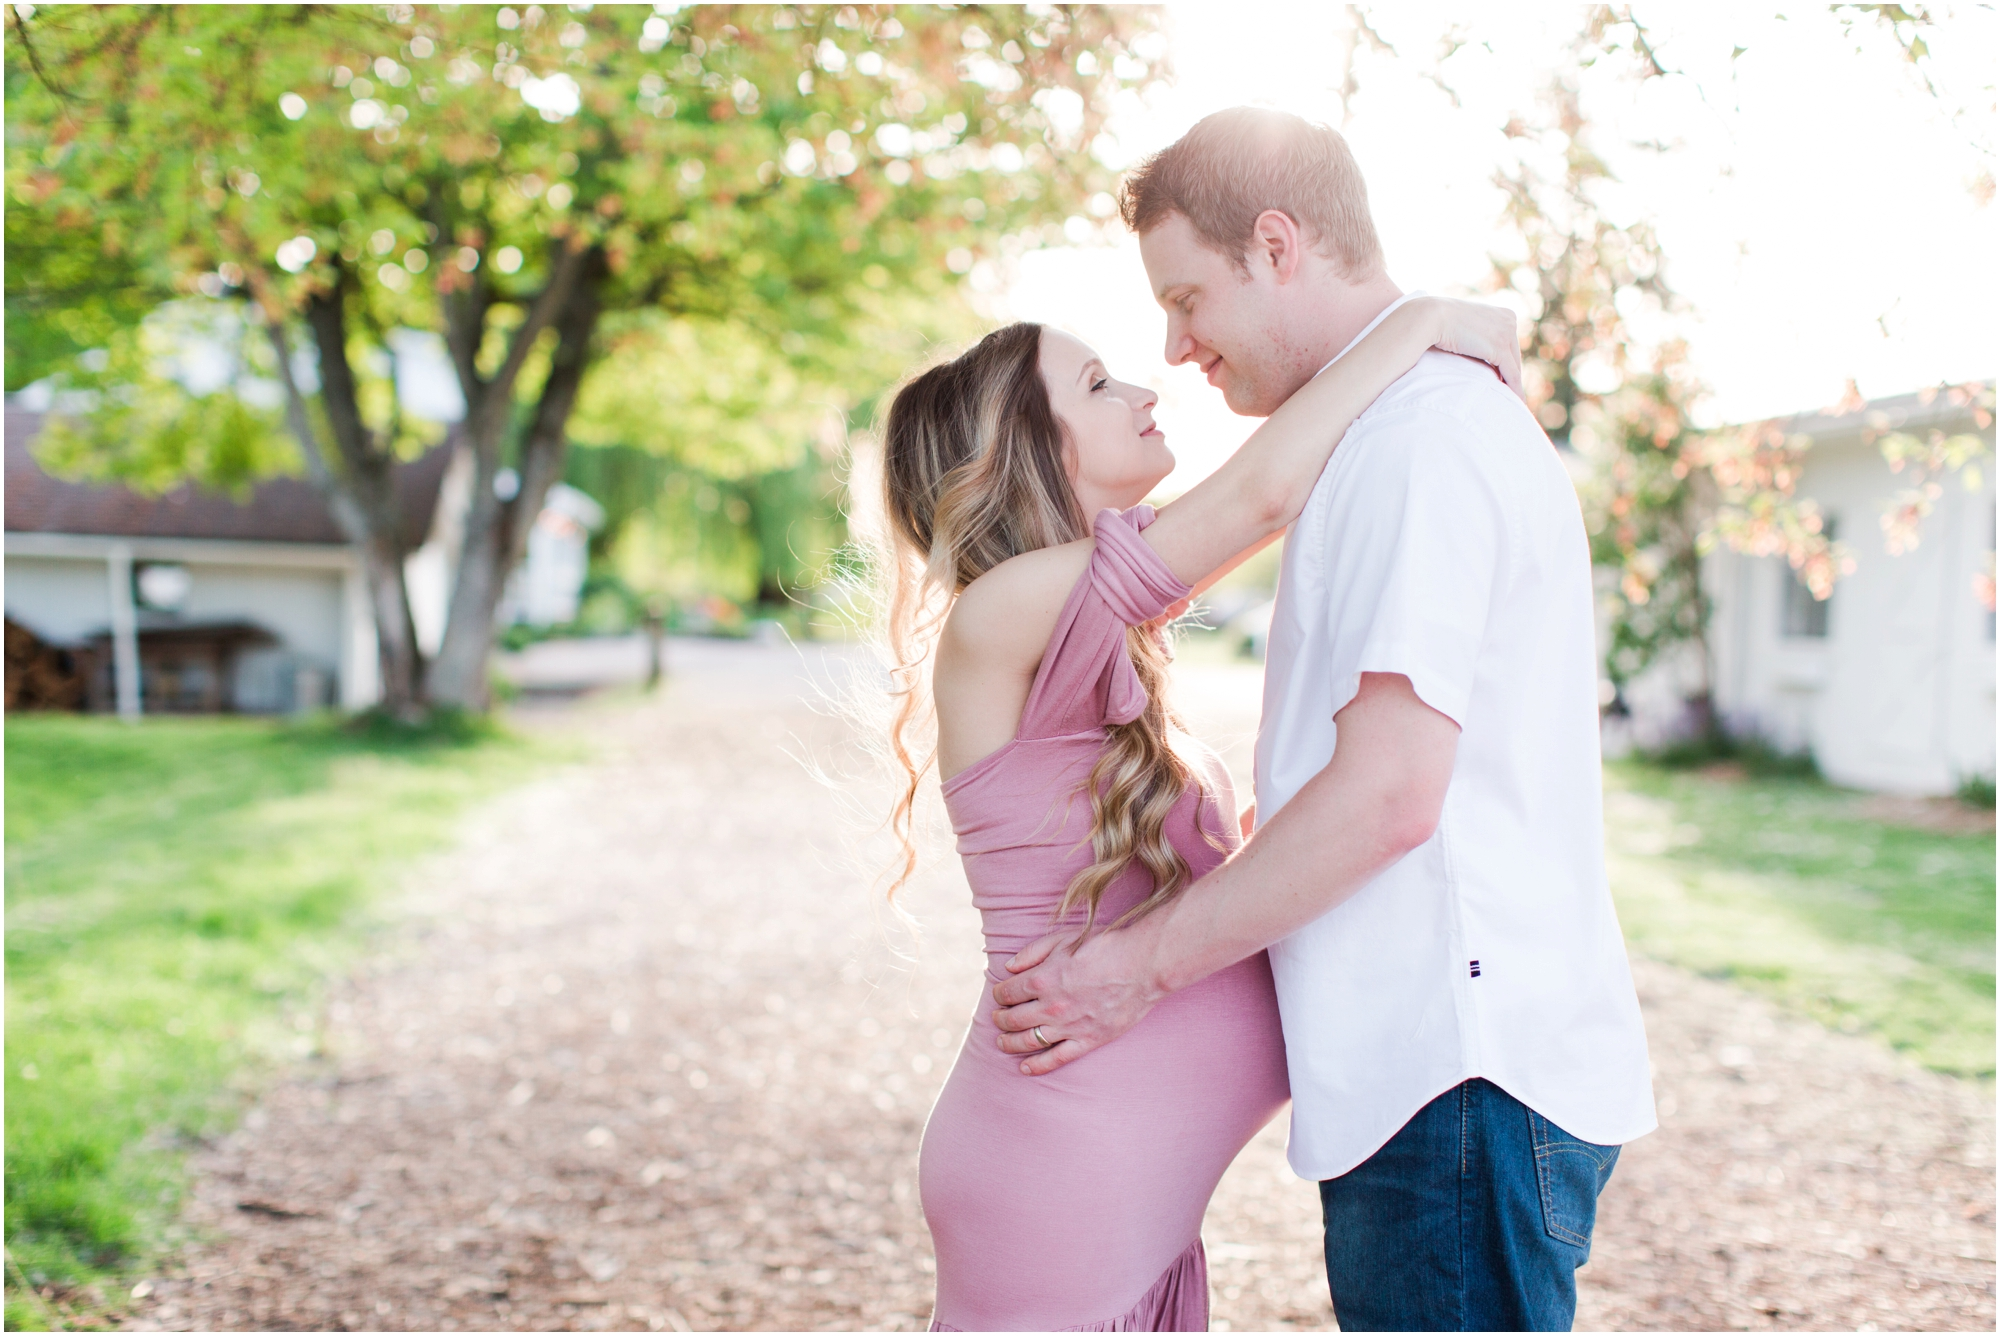 Wild Hearts Farm maternity shoot in Tacoma. Photos by Briana Calderon Photography based in the greater Seattle Tacoma Area._1209.jpg